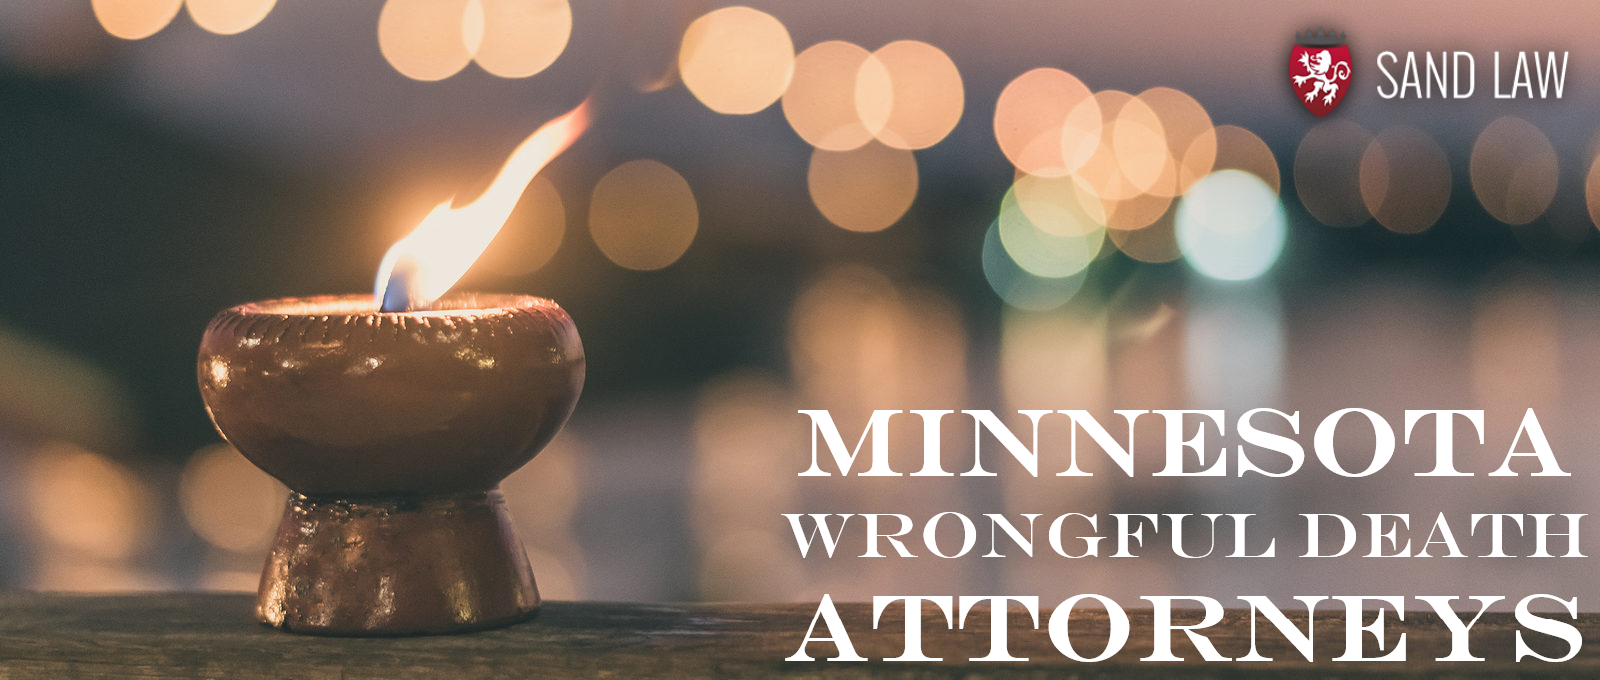 Candle Burning - Minnesota Wrongful Death Attorneys - Sand Law LLC